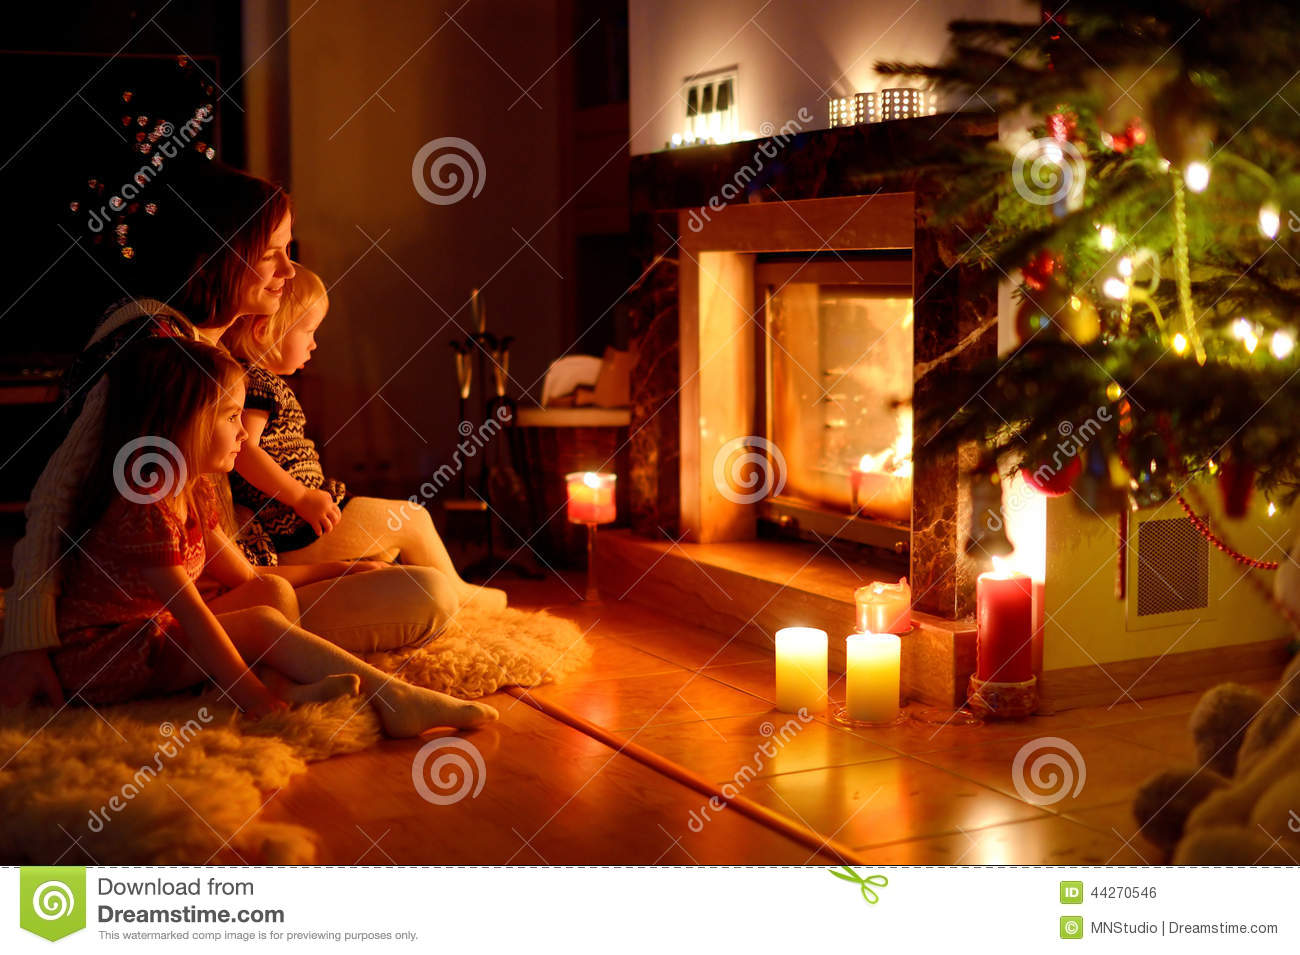 Cute Cats And Kittens Wallpaper Hd Cat Themes Happy Family By A Fireplace On Christmas Stock Photo